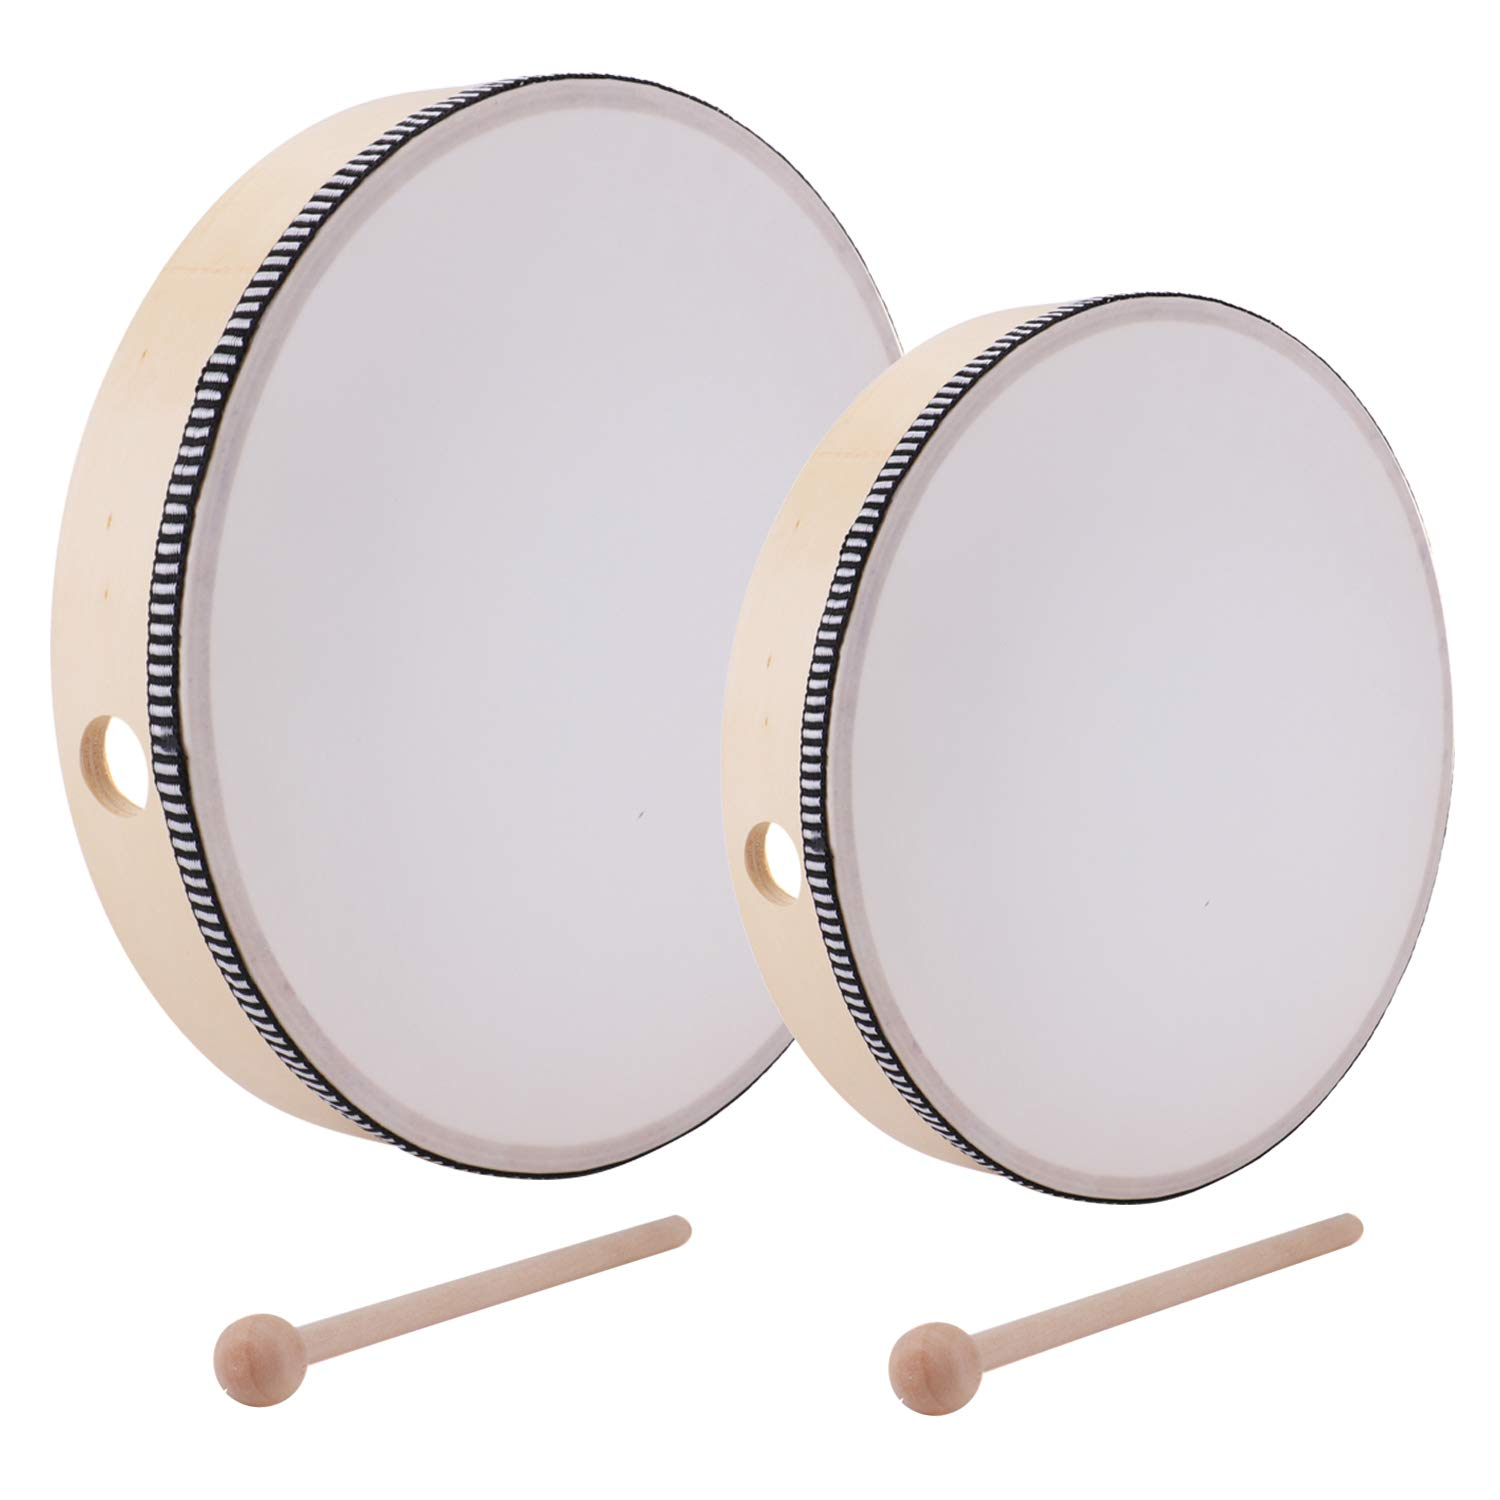 Foraineam 10 Inch & 8 Inch Hand Drum Kids Percussion Wood Frame Drum with Drum Stick by Foraineam